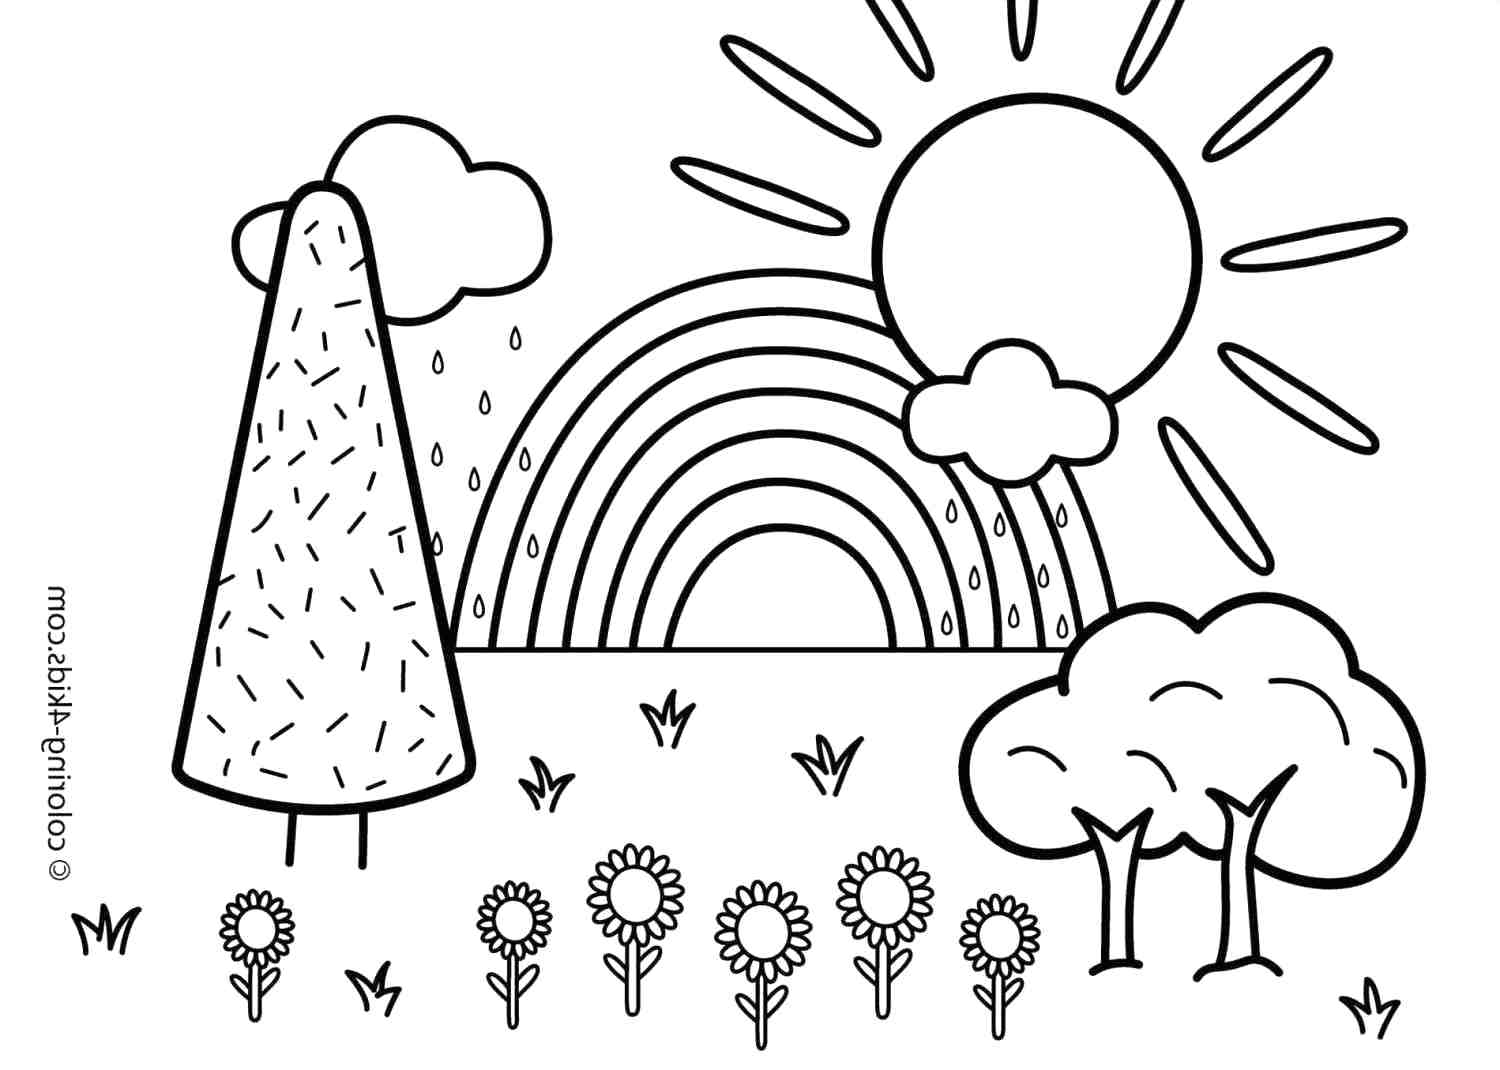 Drawing Worksheets For Kids At Getdrawings